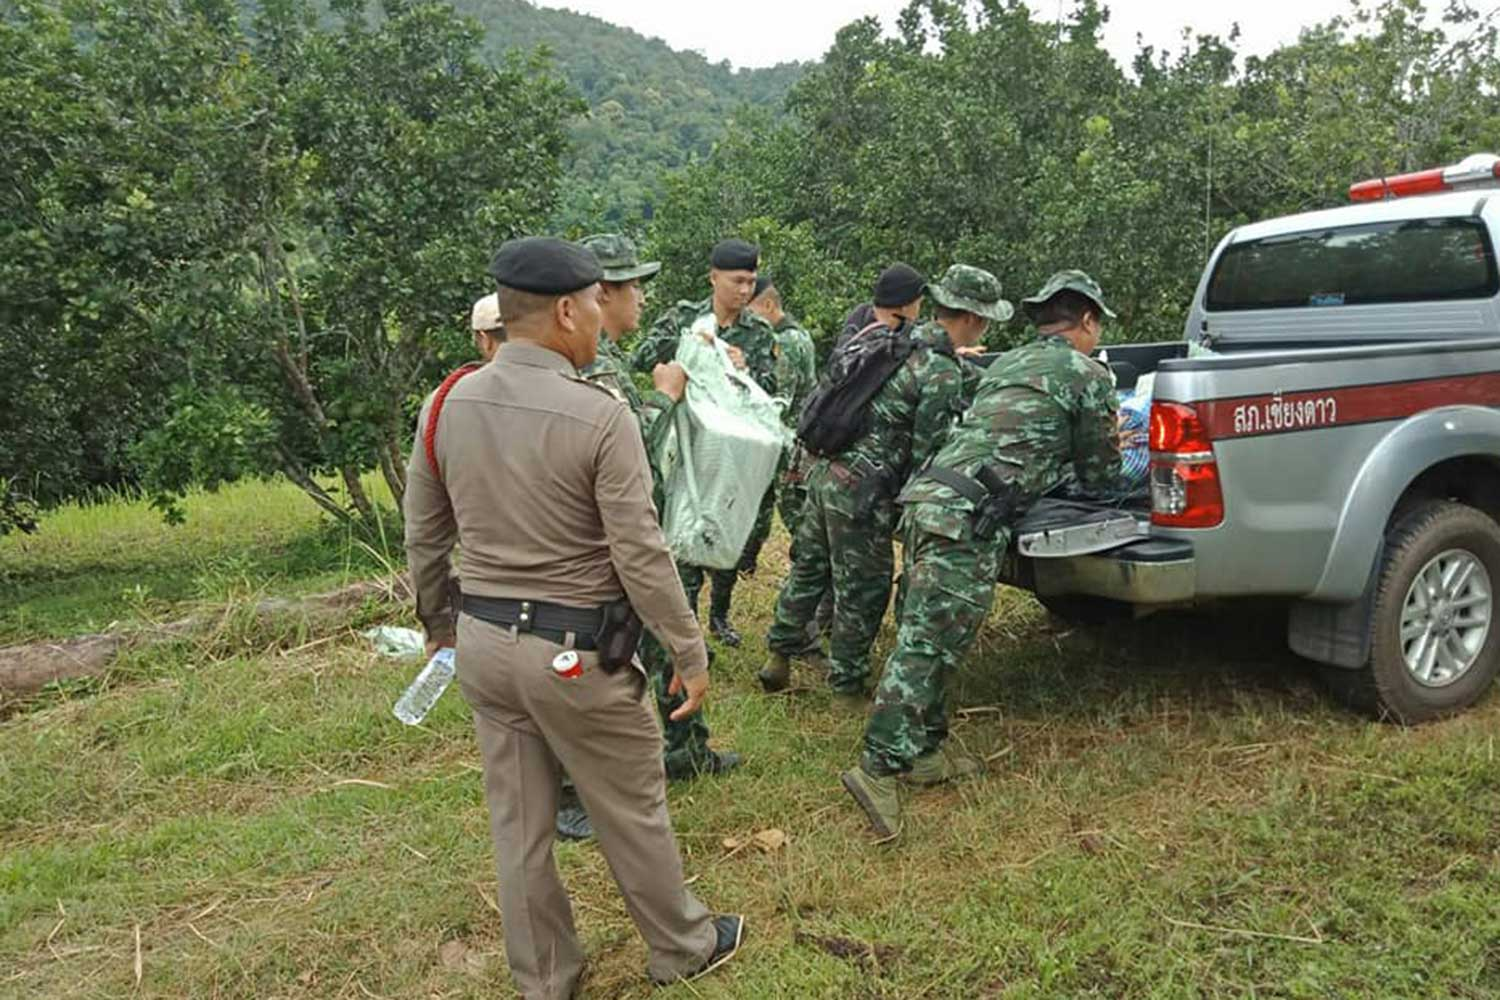 Officers put rucksacks containing 1.1 million speed pills on the back of a police pickup truck after smugglers abandoned them following a clash with a security patrol near the Myanmar border in Chiang Dao district, Chiang Mai, early on Tuesday. (Photo taken from Khon Khao Chiang Mai Facebook page)